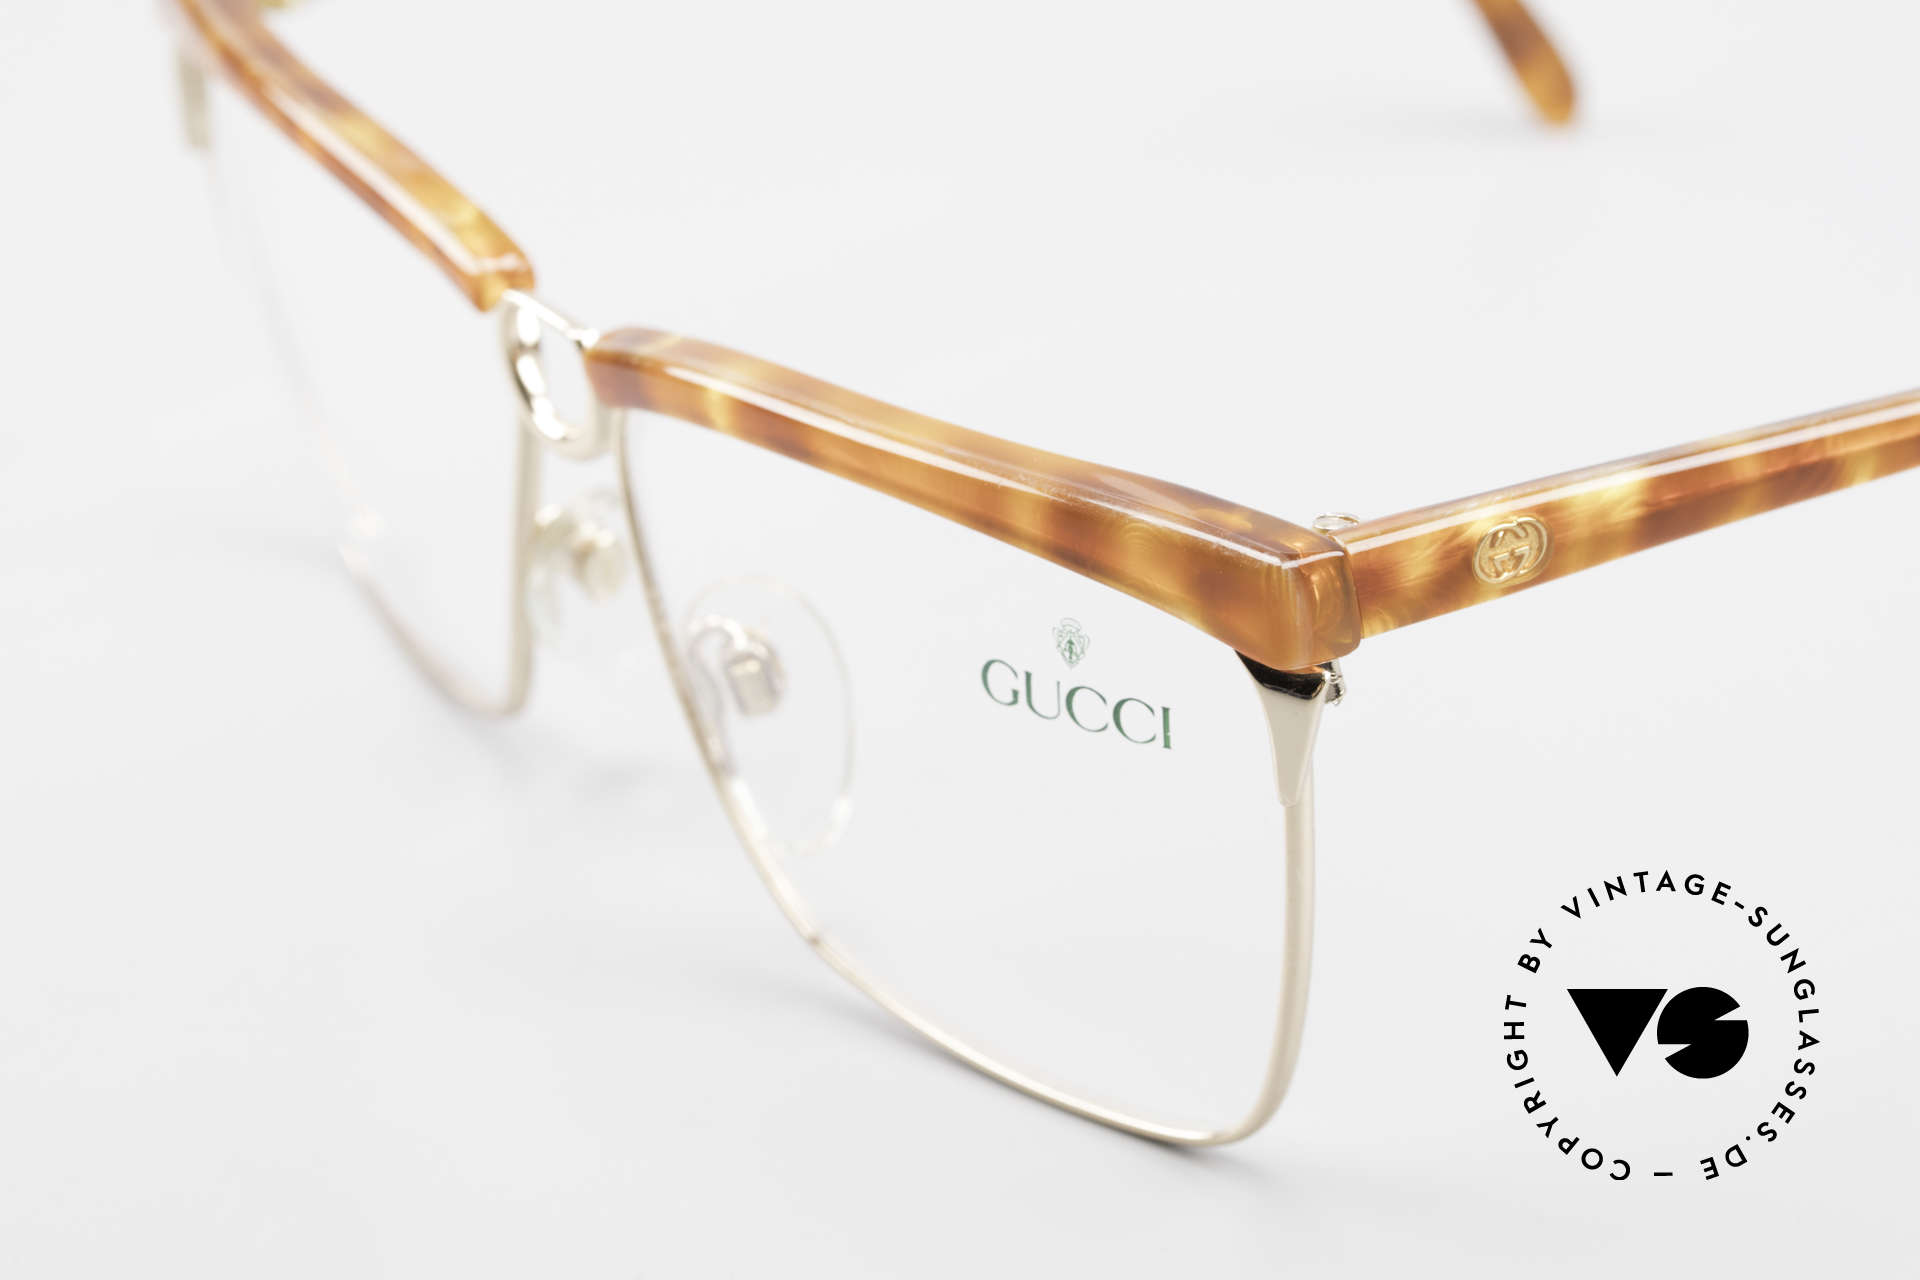 Gucci 2301 Ladies Designer Eyeglasses 80s, unworn, NOS (like all our vintage Gucci eyeglasses), Made for Women